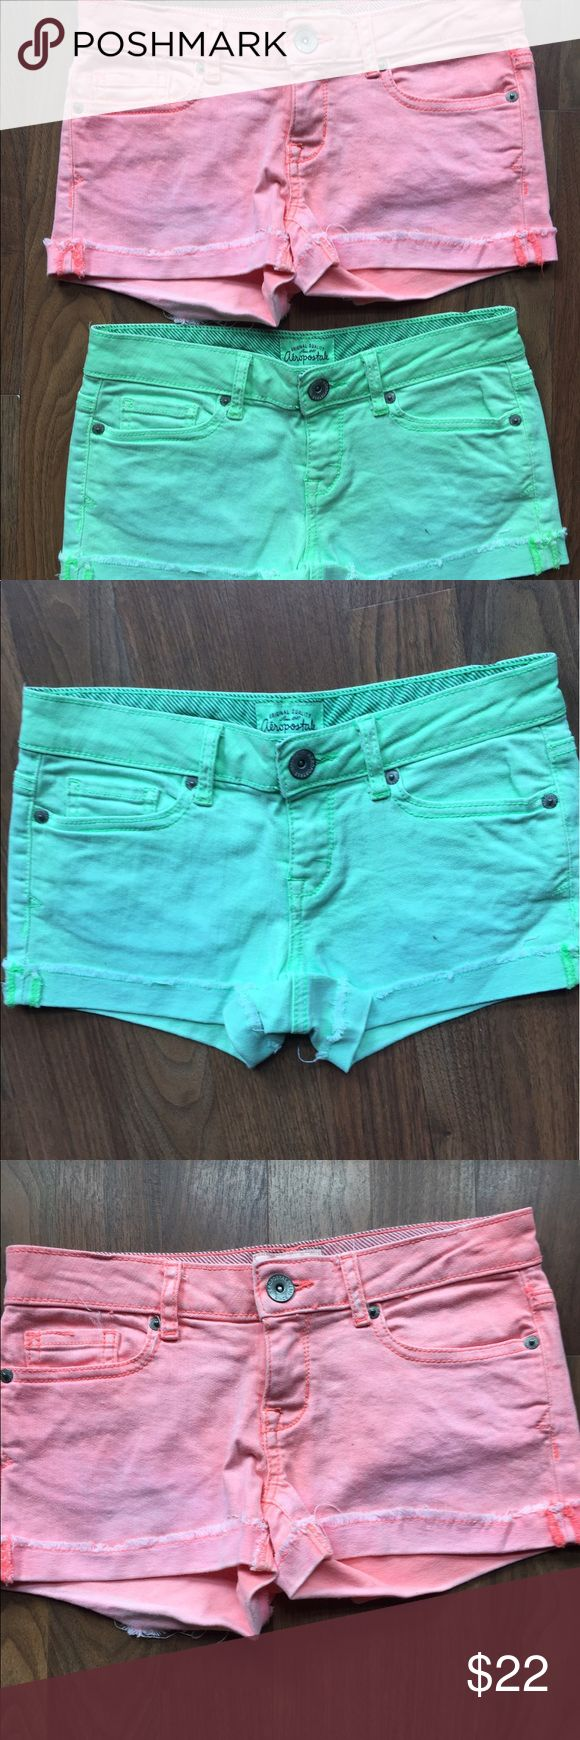 Lot 2 Aeropostale Sz 0 Neon Green Pink shorts Pink and green denim shorts.  Size 0.  Both in great condition Aeropostale Shorts Jean Shorts